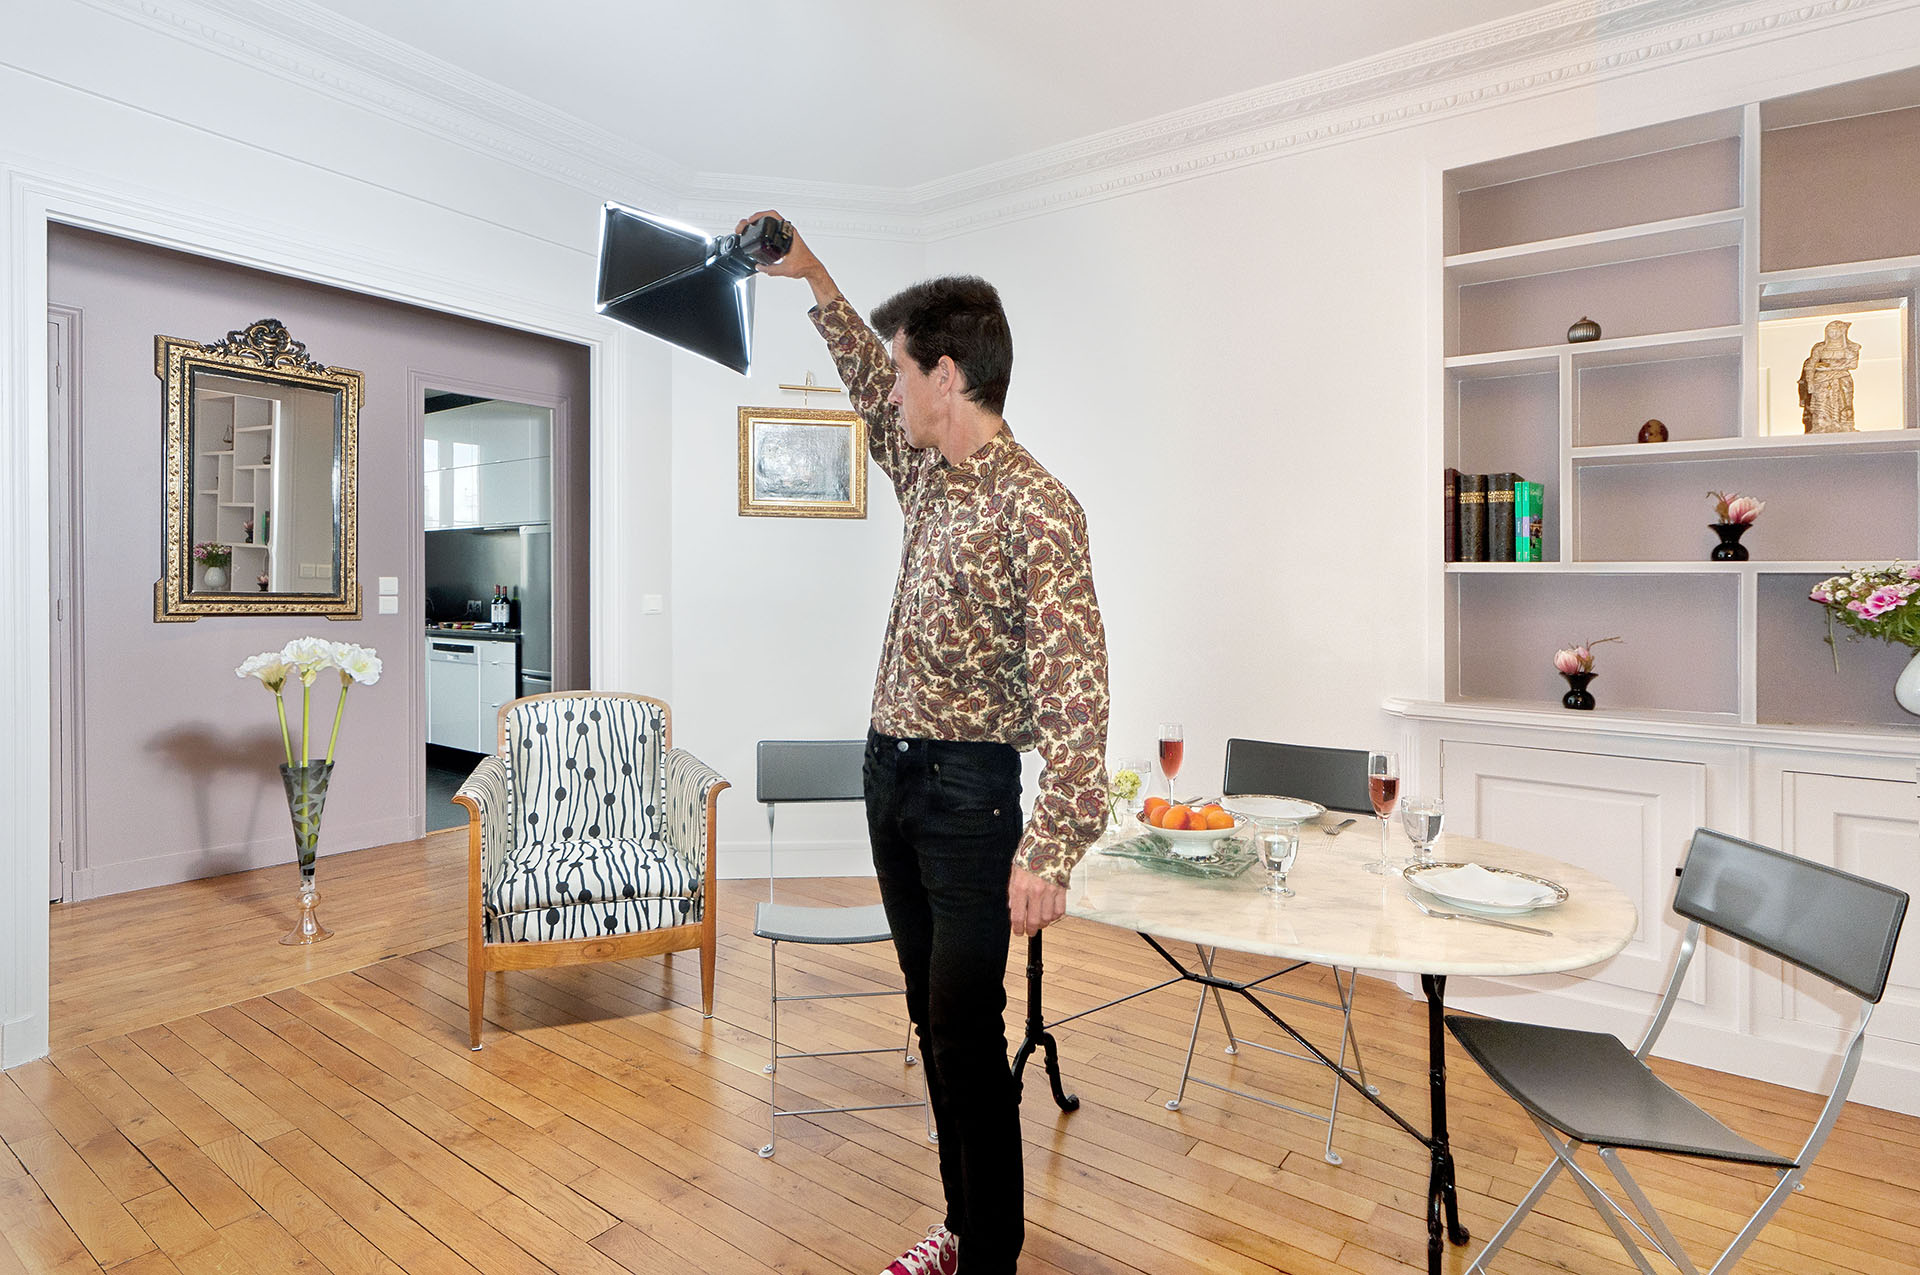 Que Faire En Interieur A Paris photographe appartement paris: rapide, efficace et experimenté